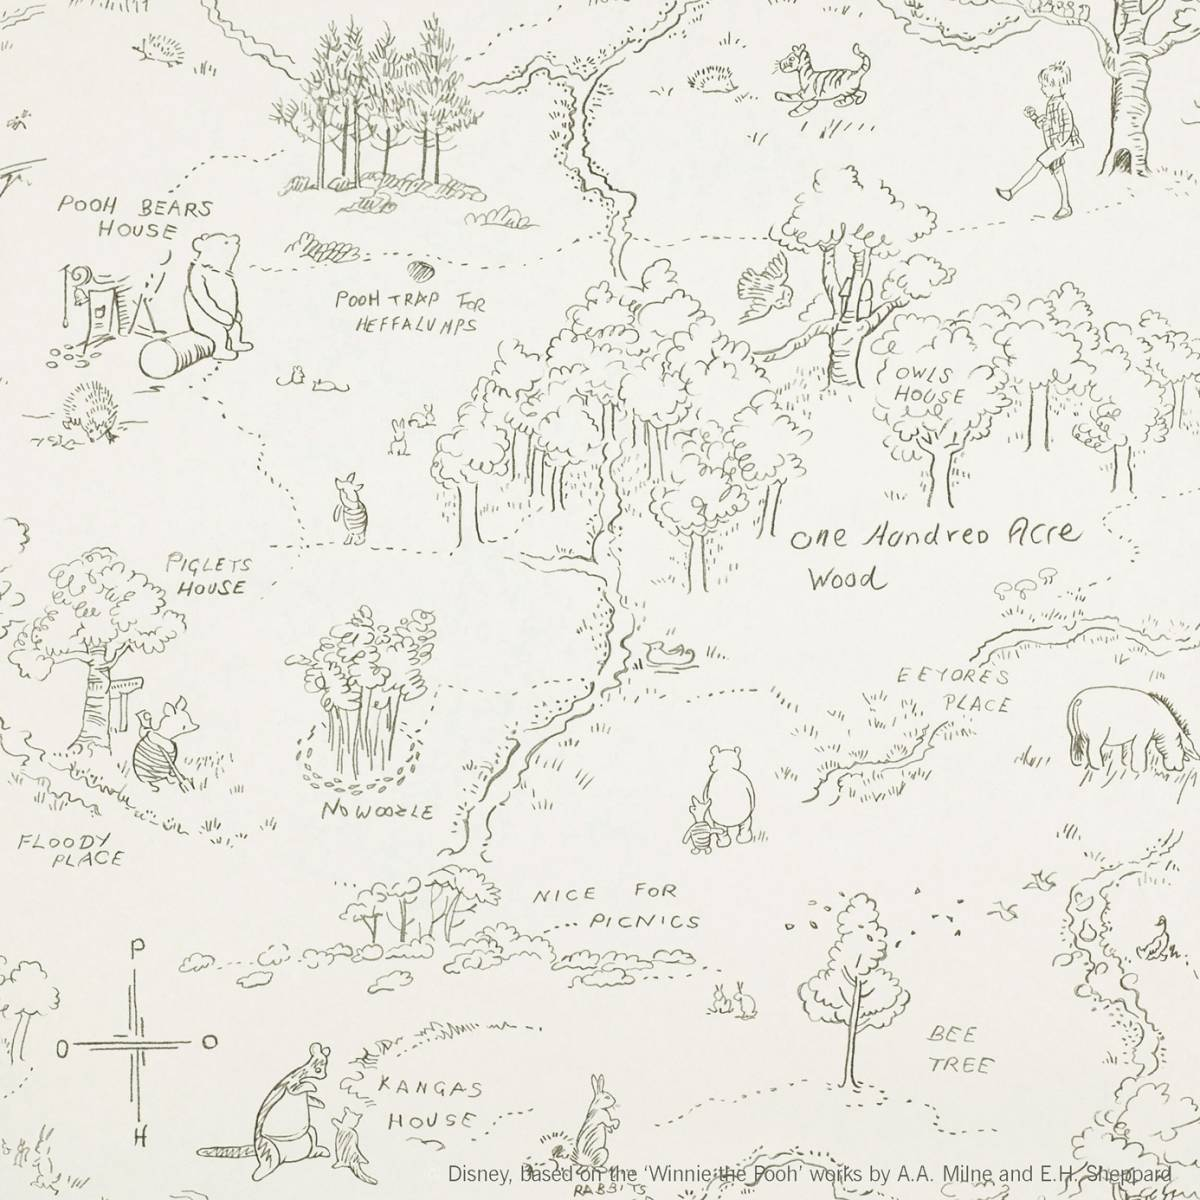 Jane Churchill One Hundred Acre Wood Map Wallpaper Charcoalproduct Code J129w 04